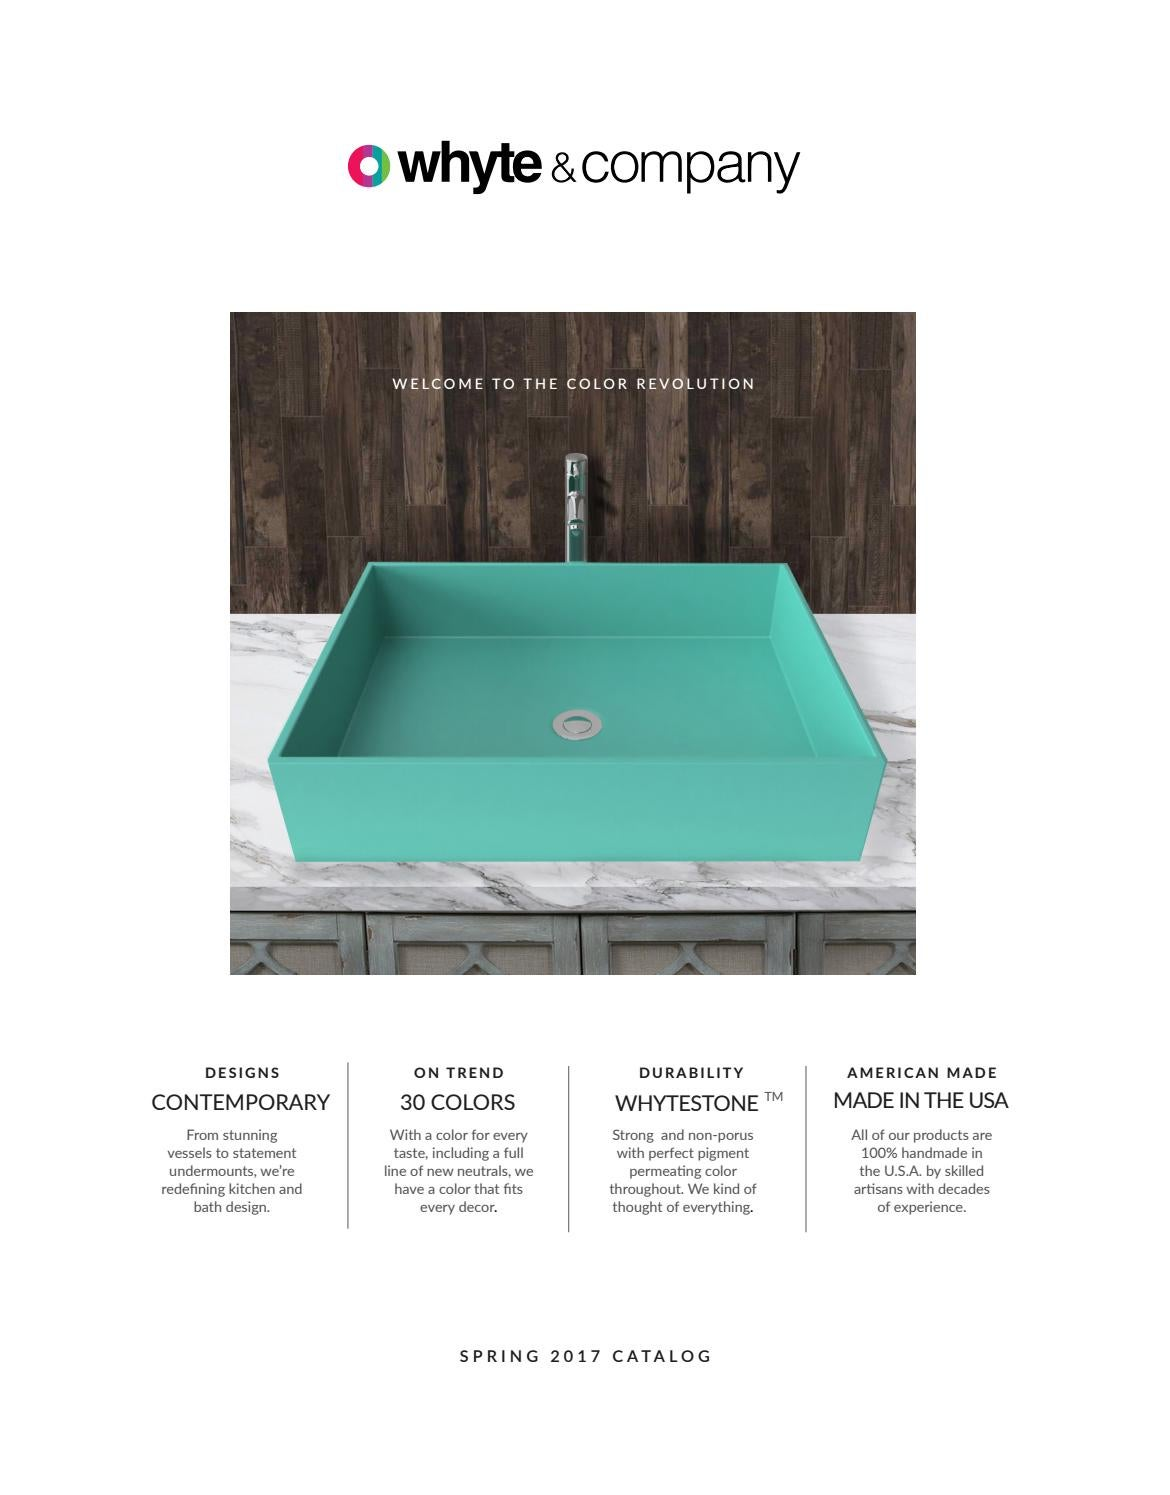 Whyte & Company Spring 2017 Catalog - stone composite sinks by tnspi ...